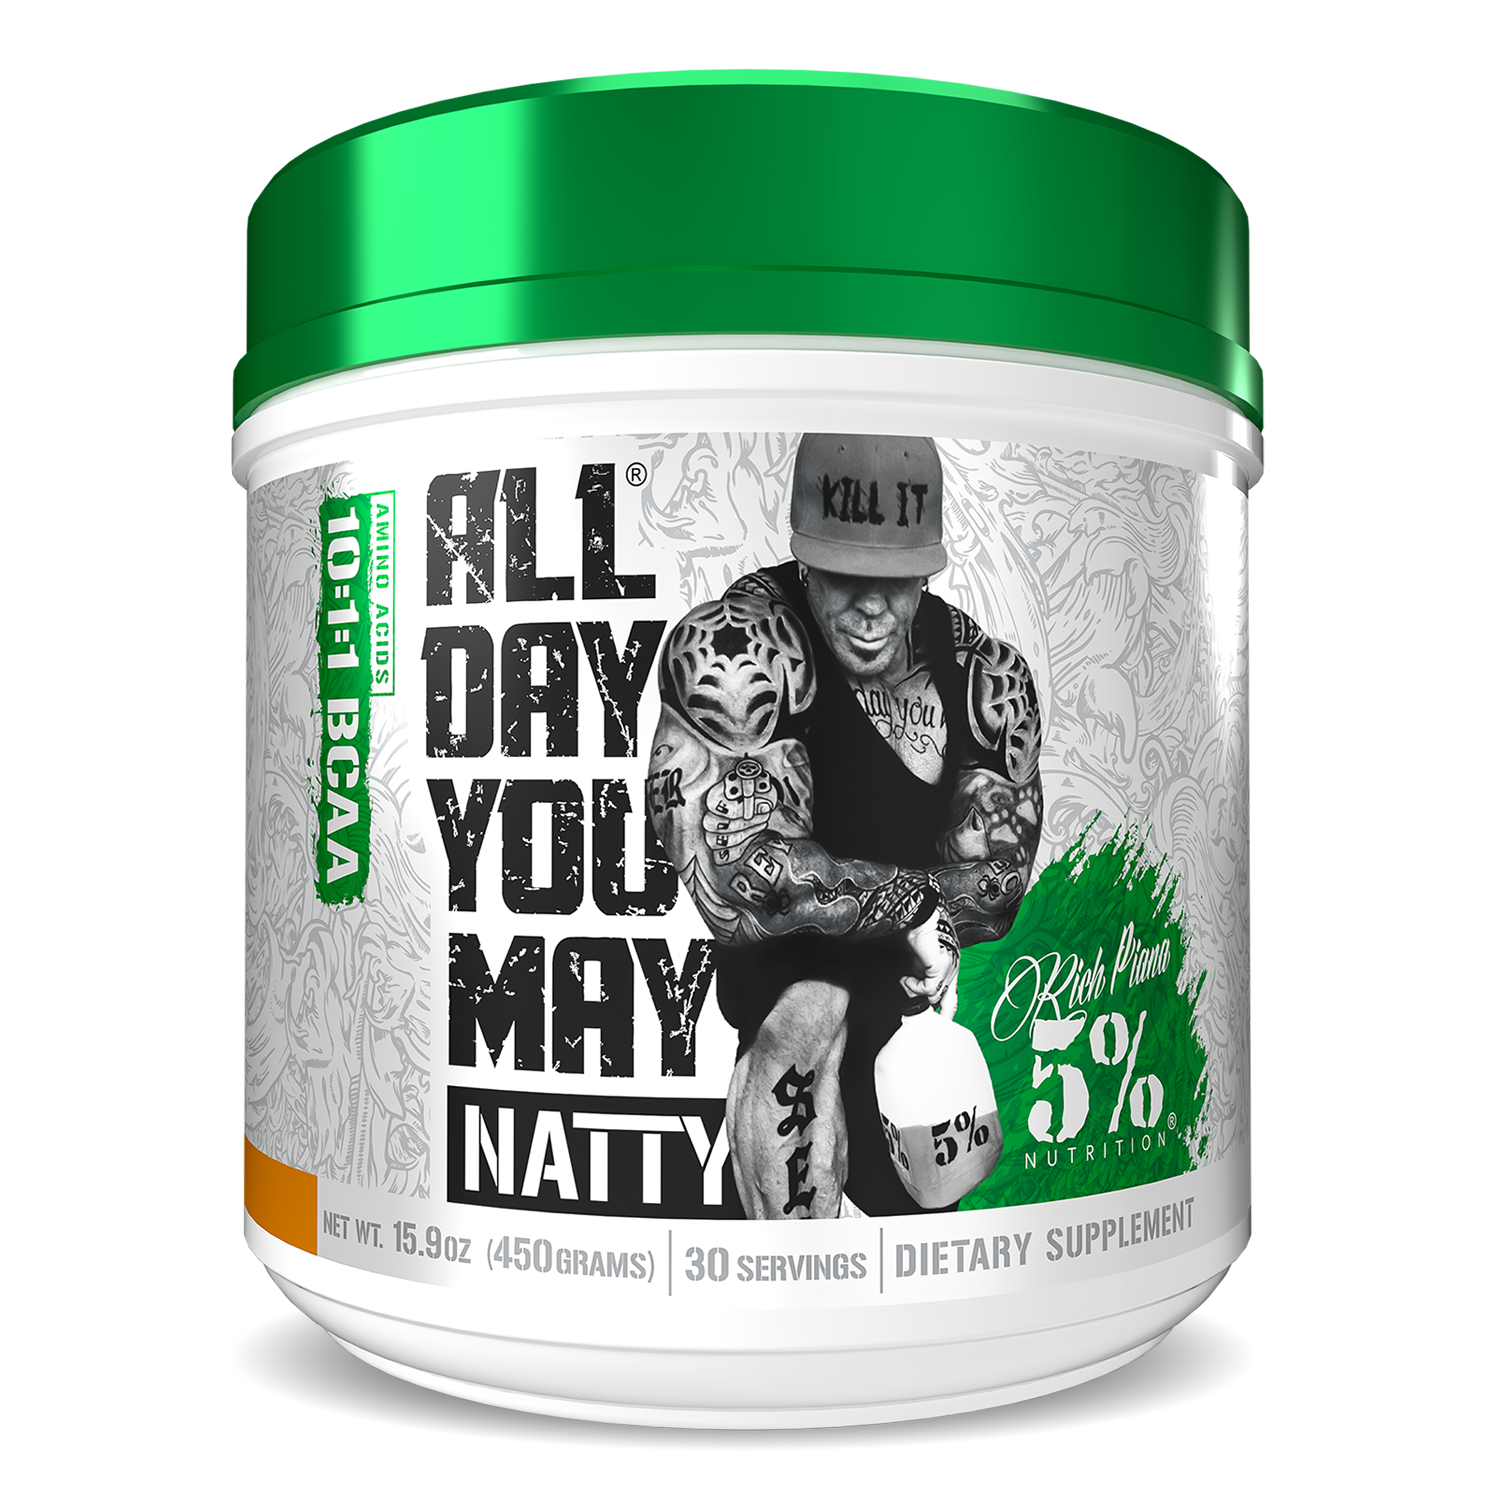 All Day You May Natty